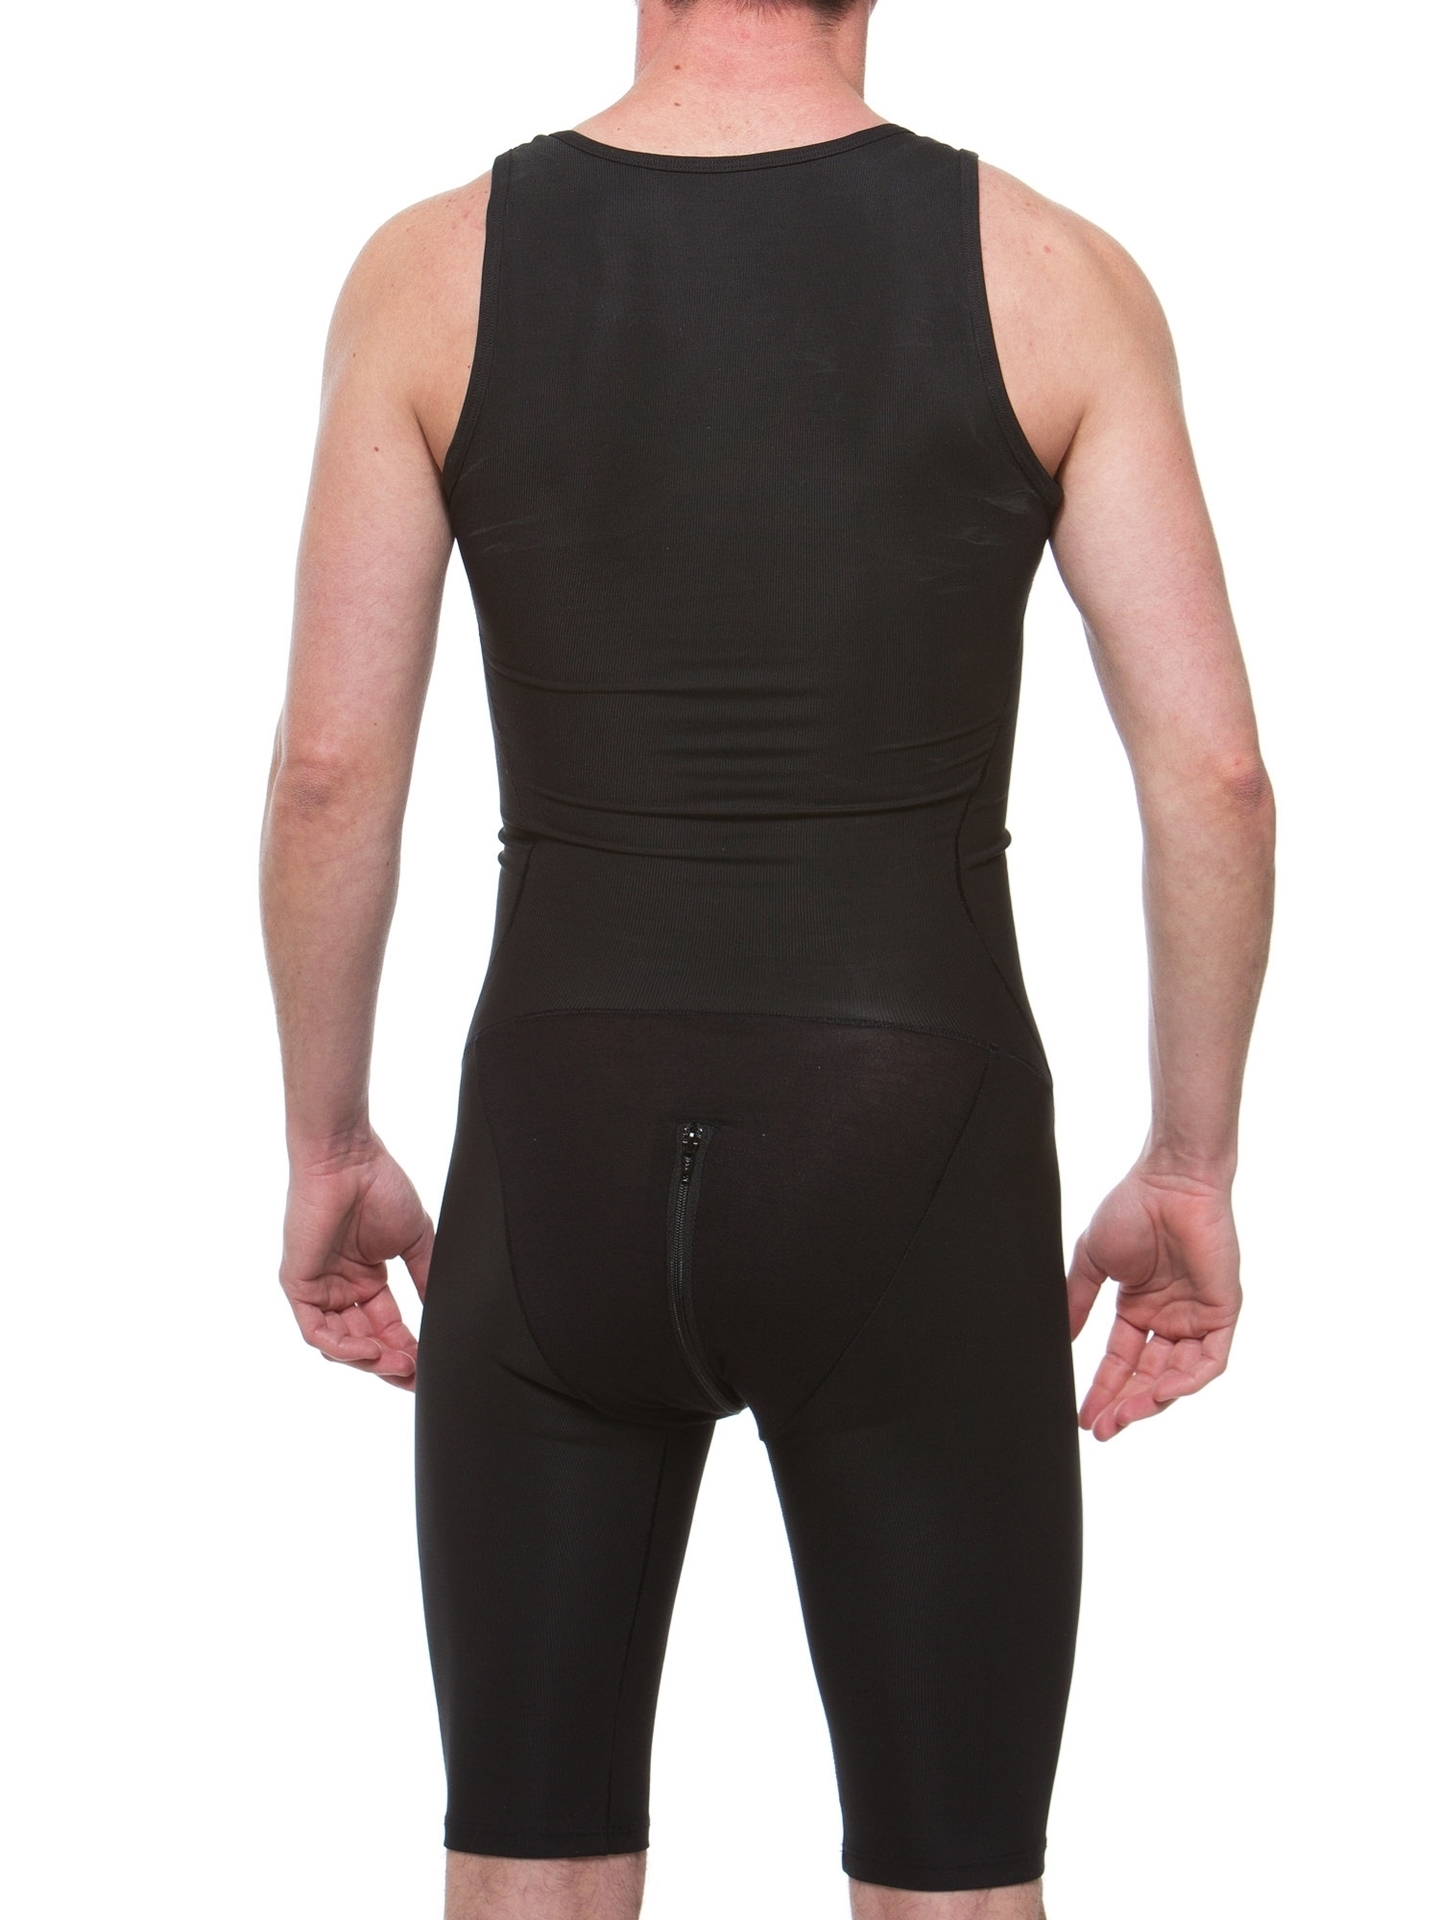 Mens Compression Shaper Bodysuit